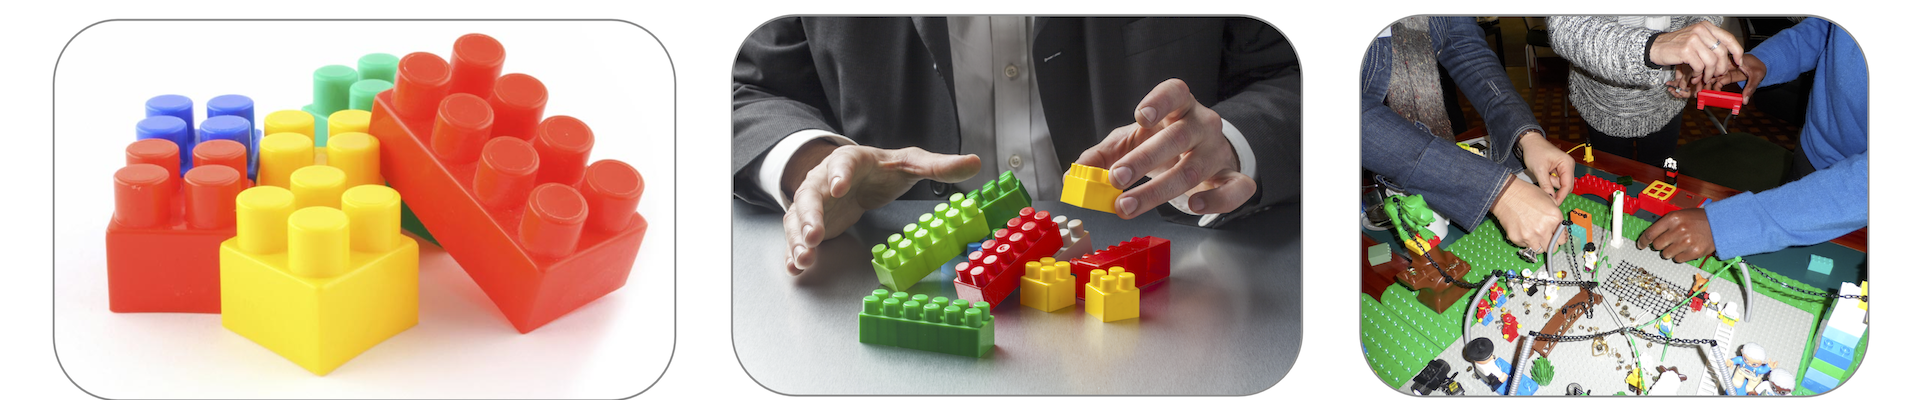 http://thoughtleaders.co.za/wp-content/uploads/2014/05/LEGO-serious-play2-1920x400.png